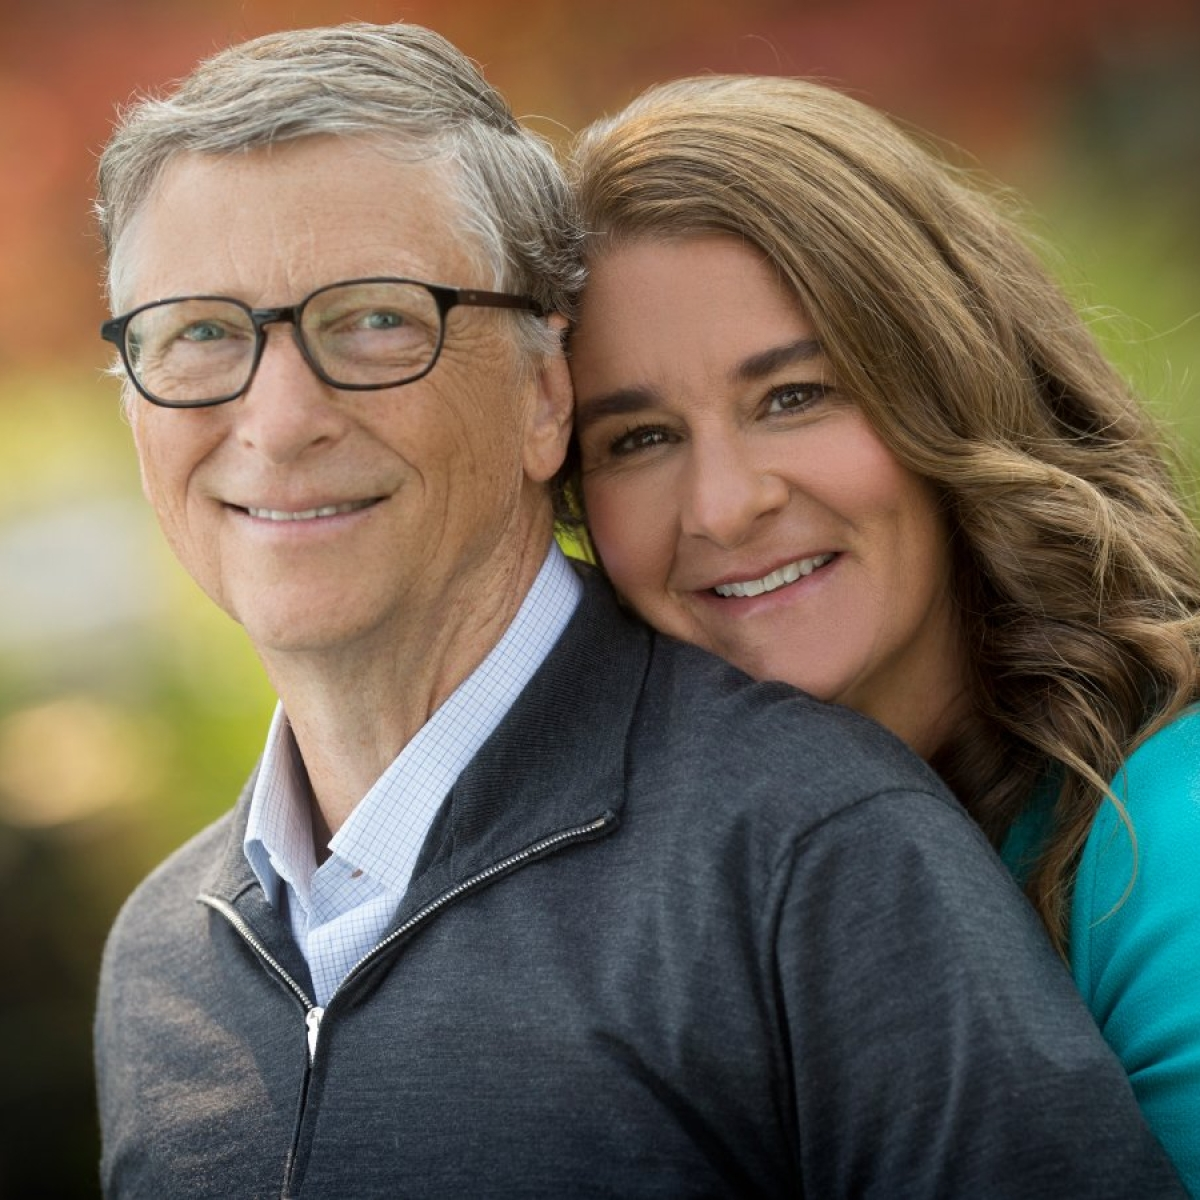 Microsoft co-founder Bill Gates quits board over investigation of 'romantic relationship' with employee